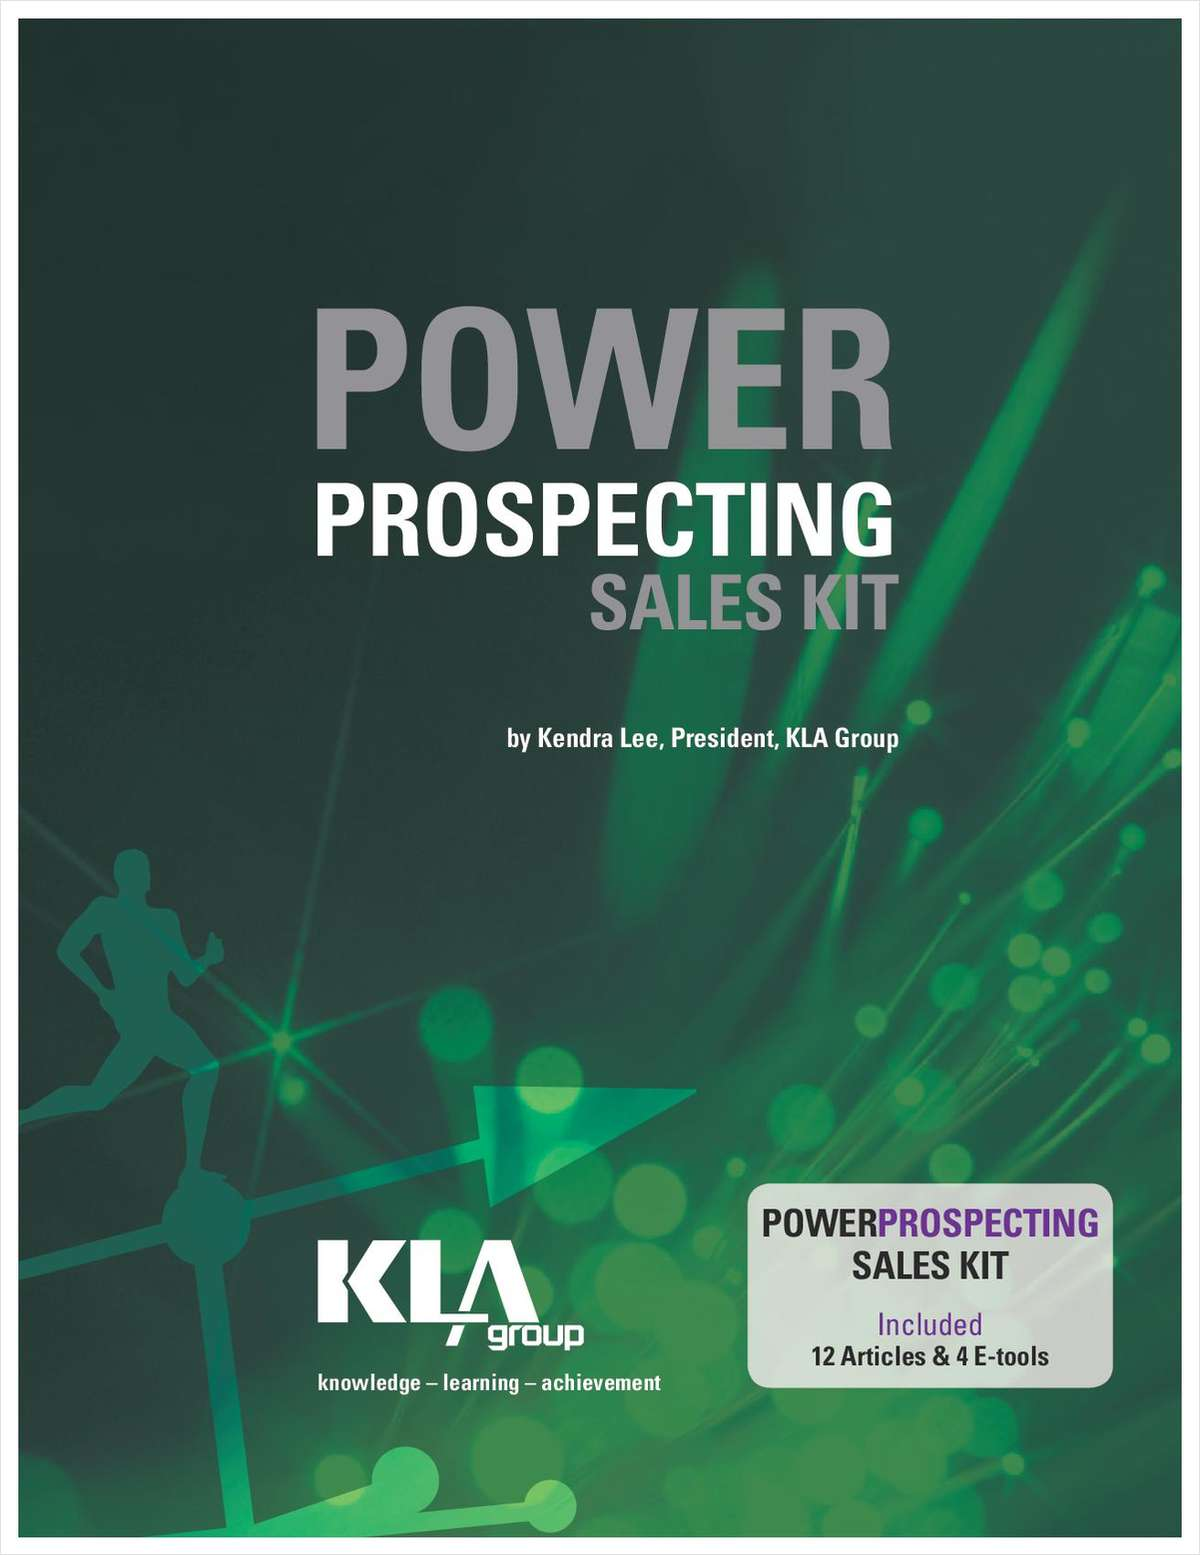 Power Prospecting Sales Kit